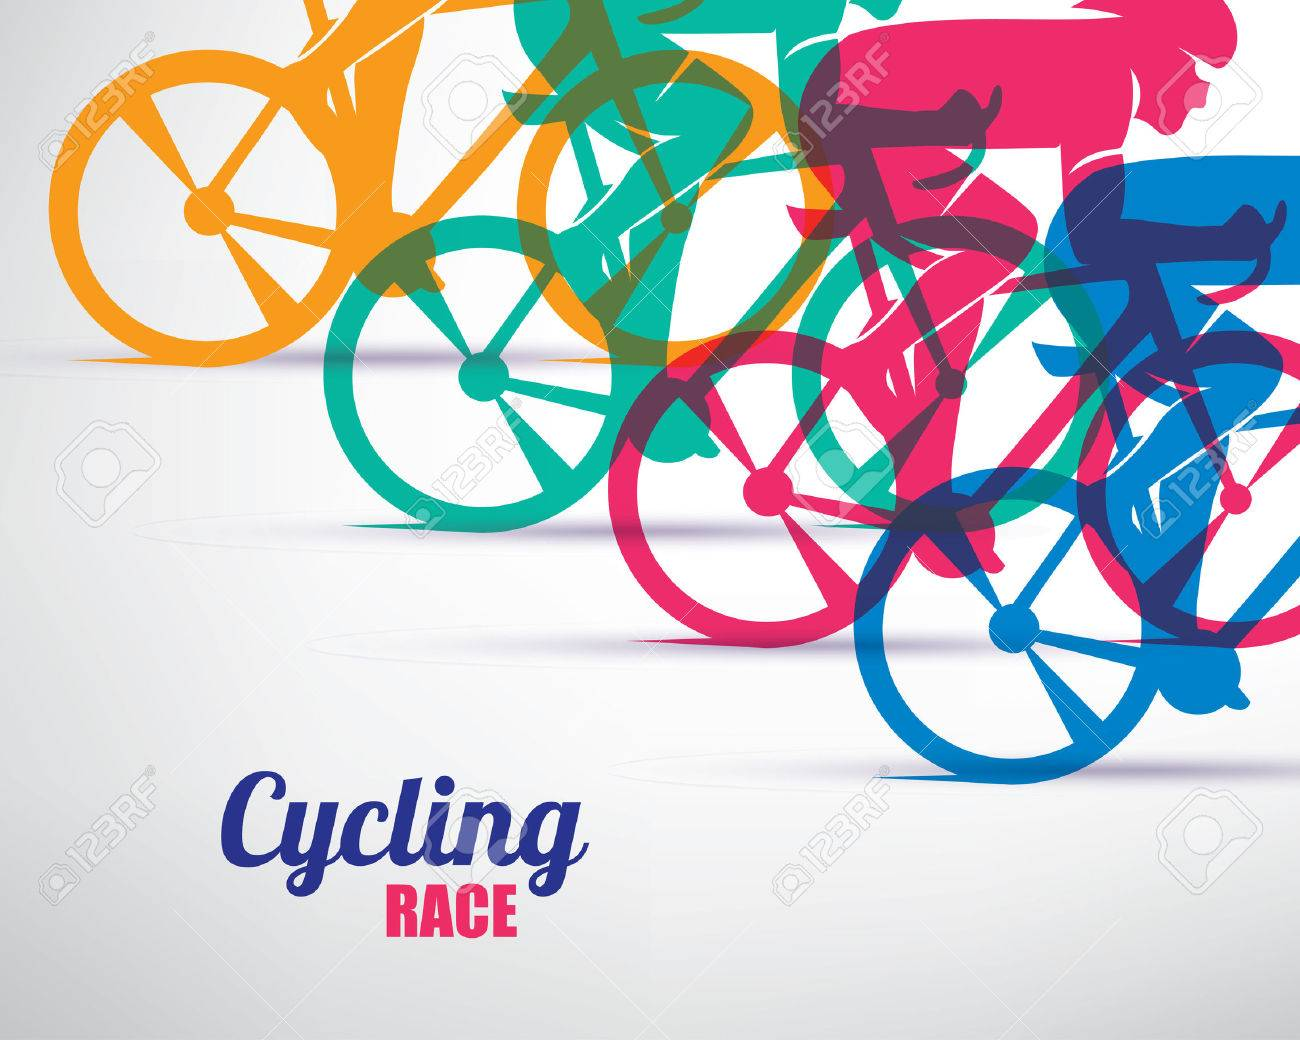 cycling race stylized background, cyclist vector silhouettes - 70454008